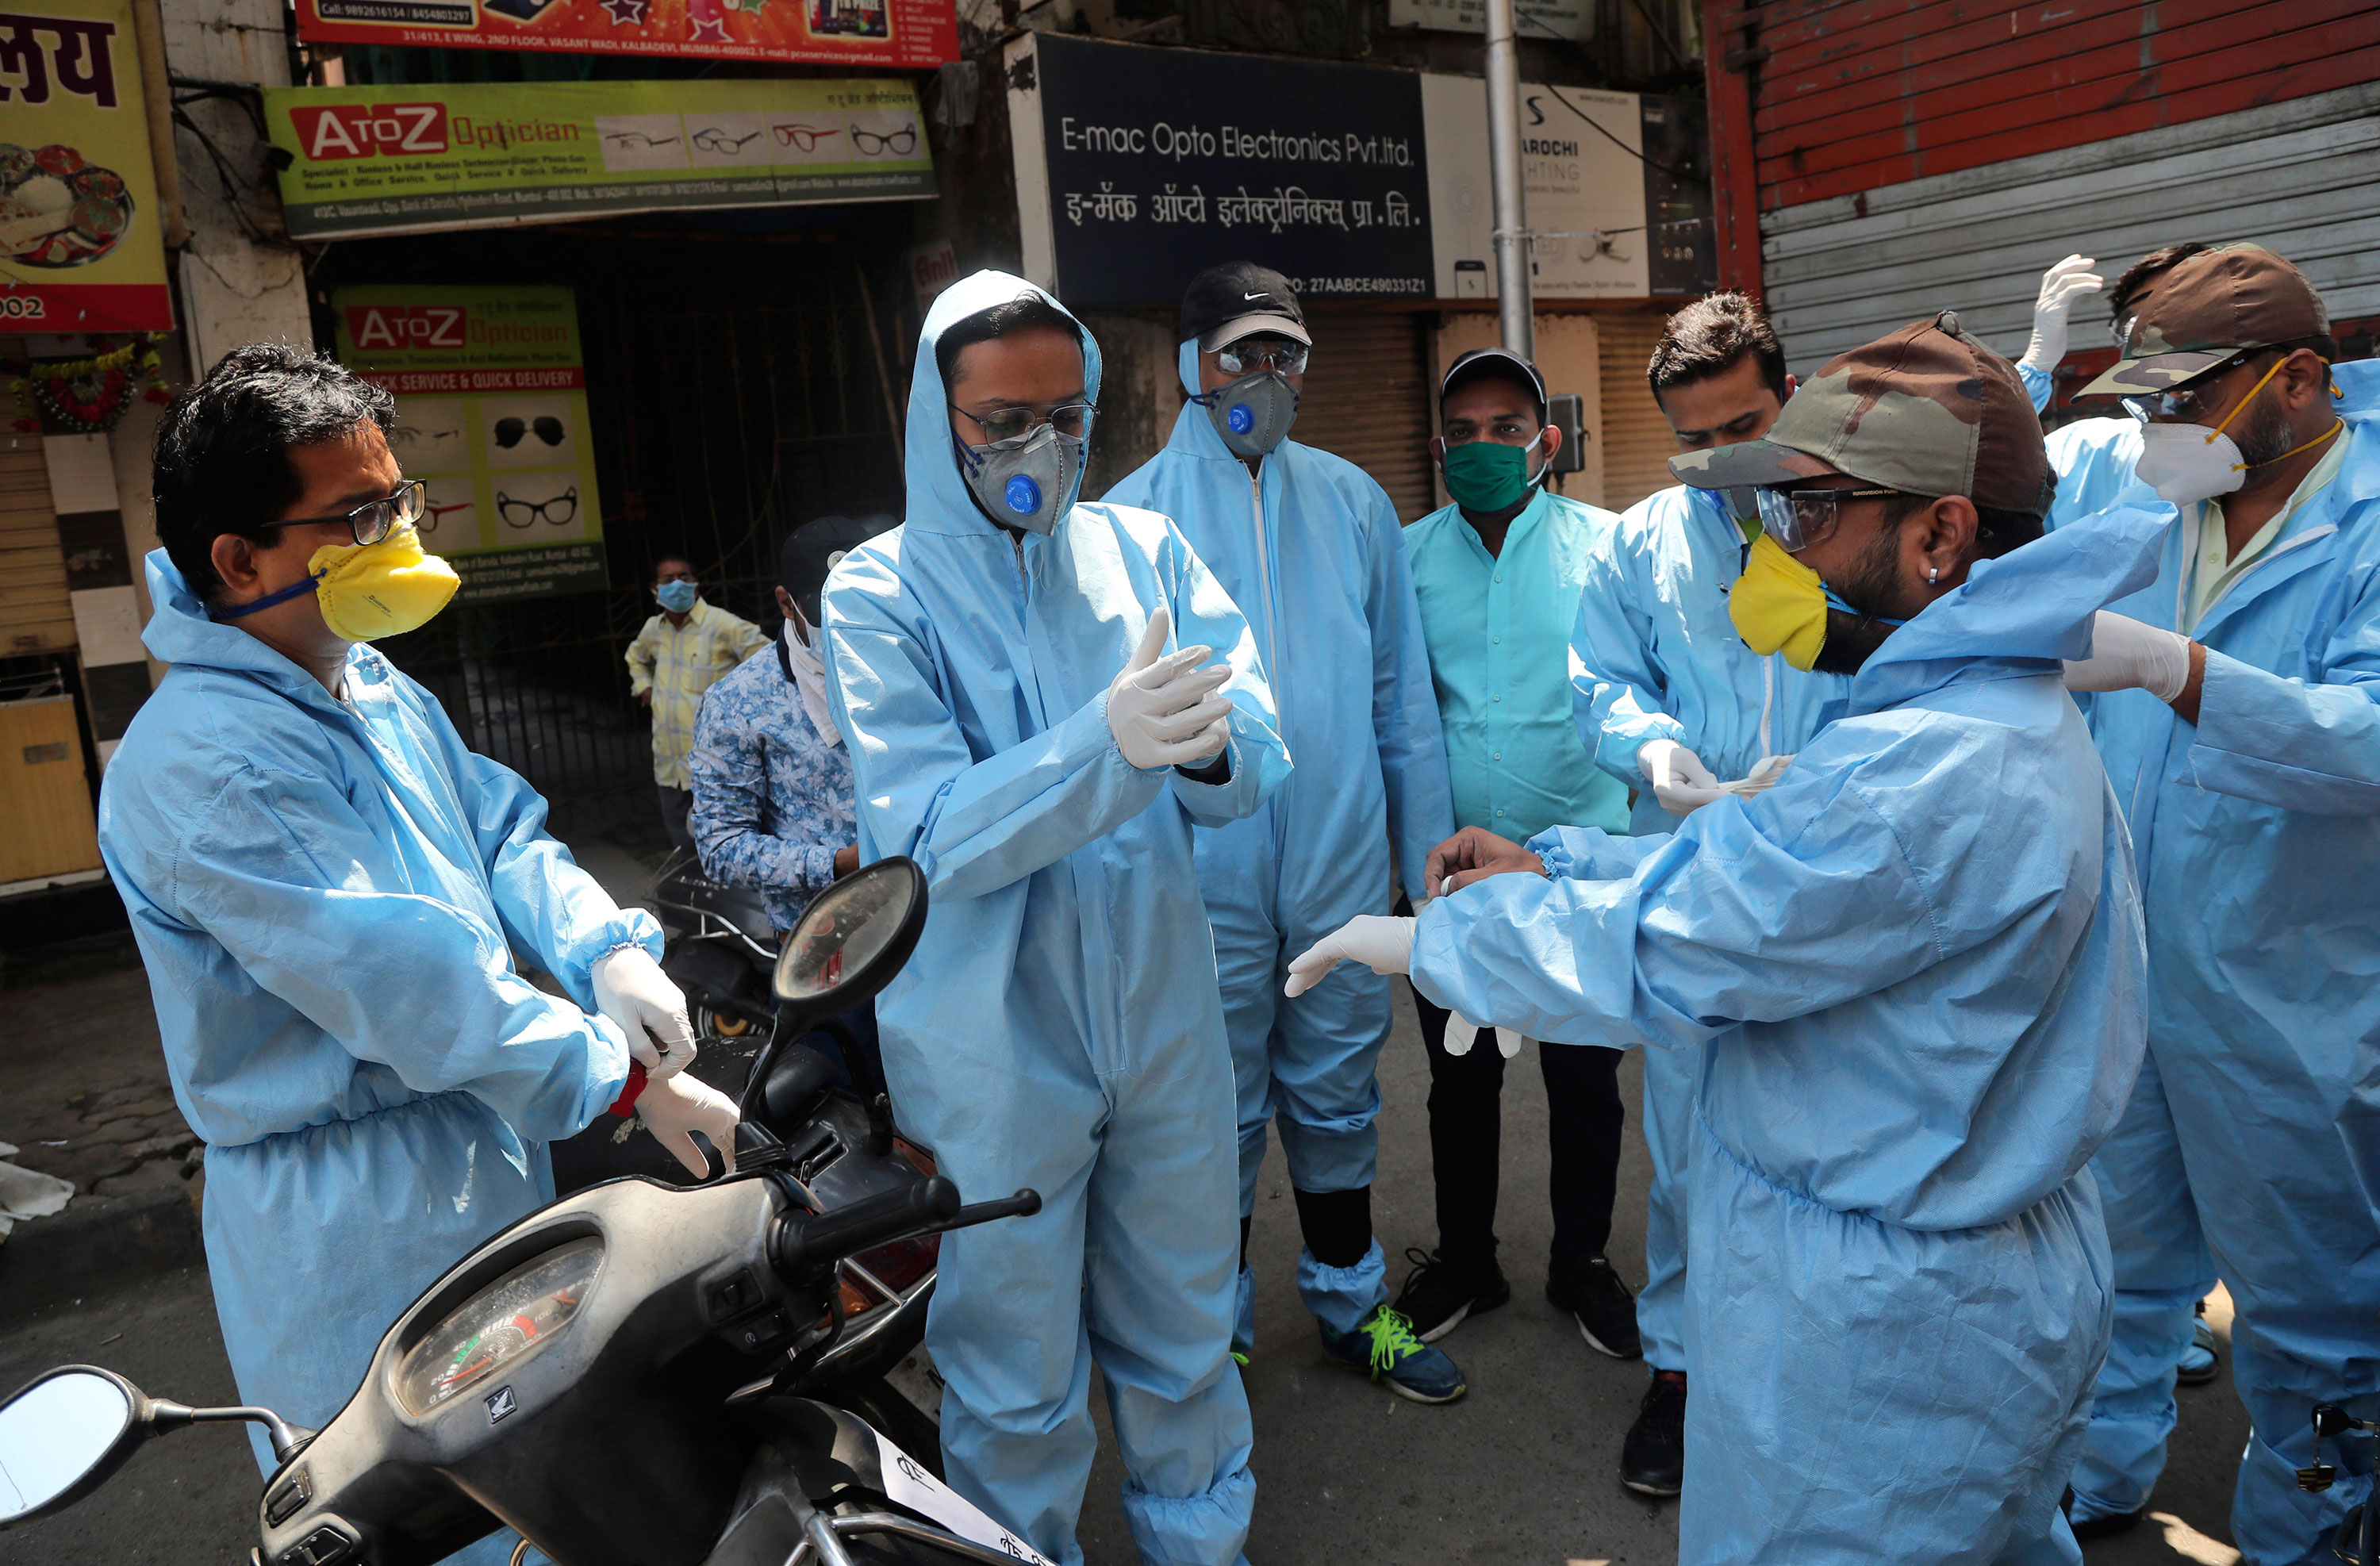 Members of a volunteer organization wear protective gear before distributing food to people in Mumbai, India, on March 29.